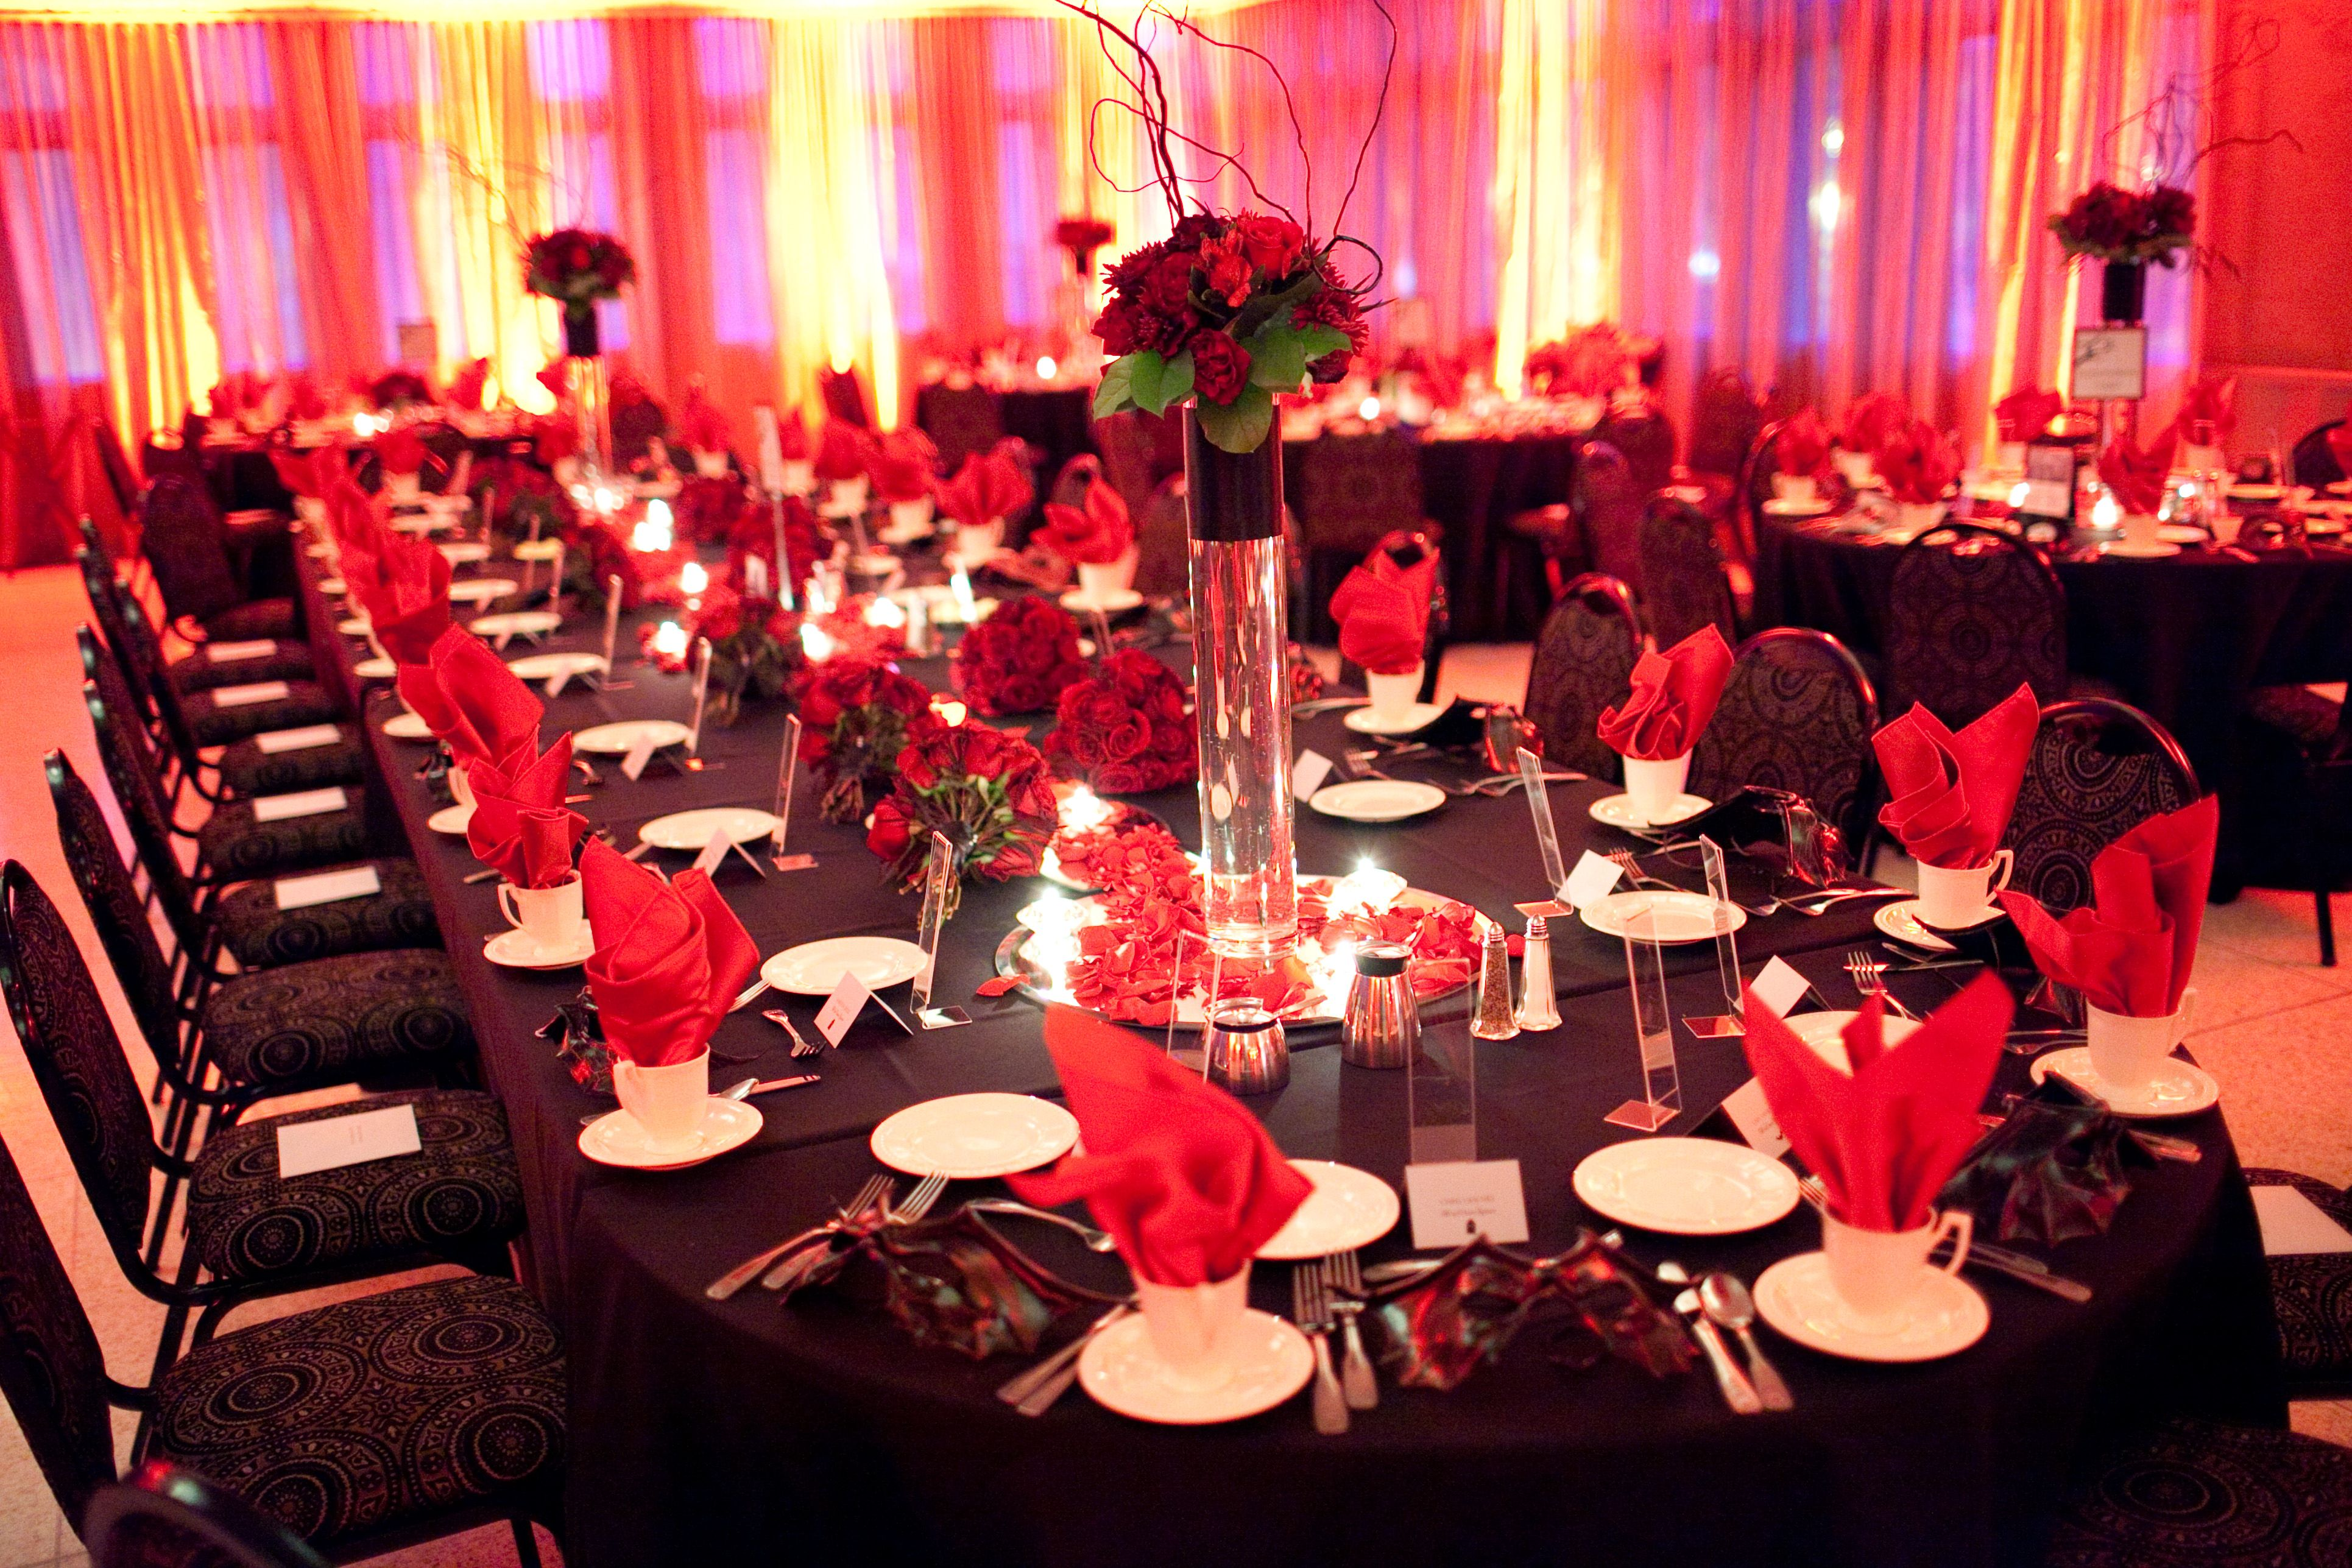 wedding reception places in twin cities%0A Black and Red theme decor  Photo by Randi   minnesota  wedding  decor